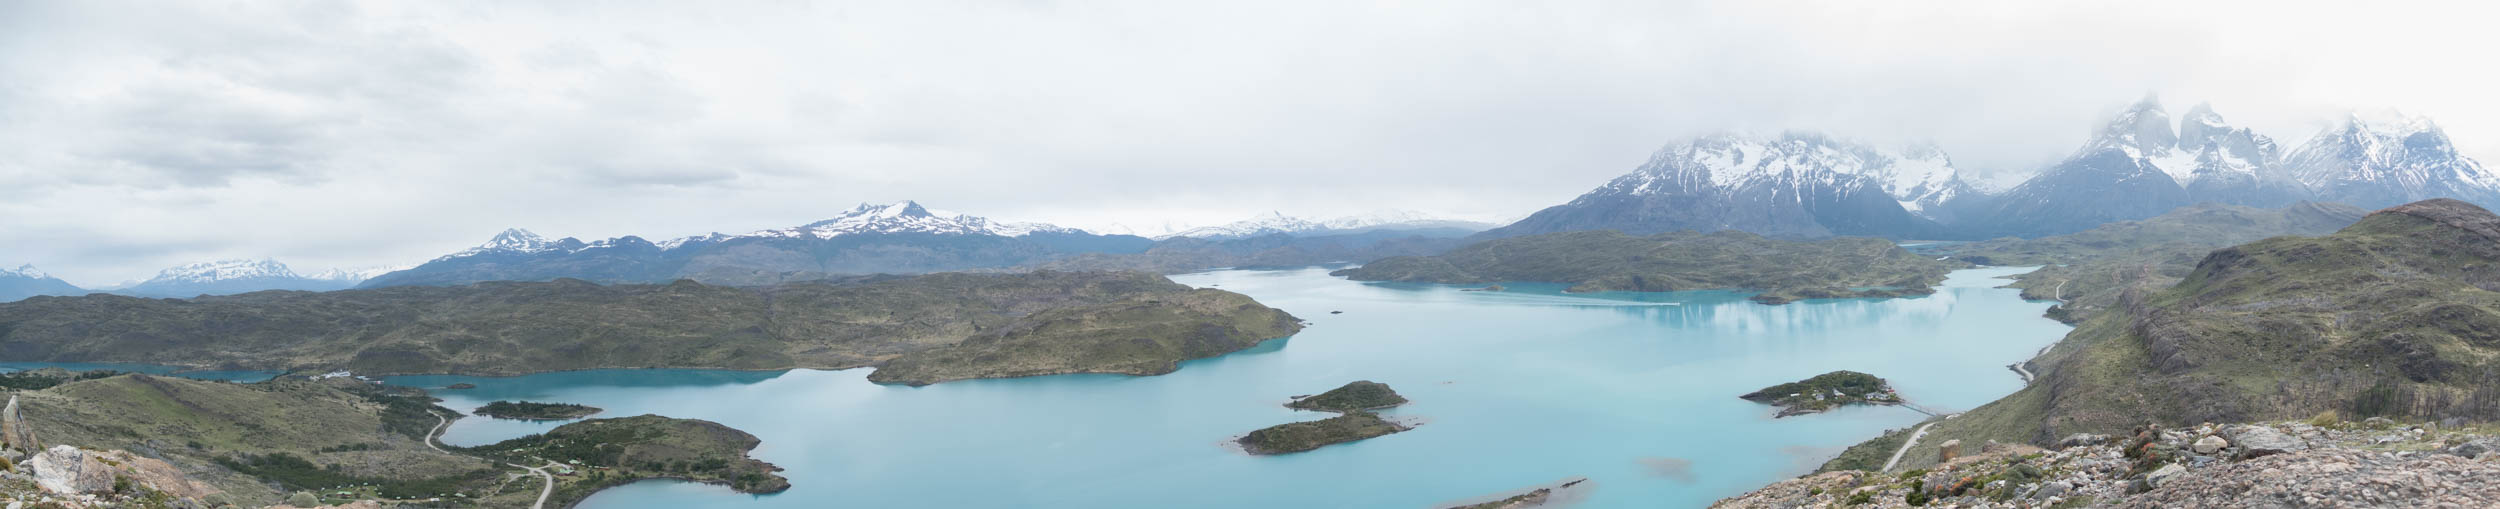 180 degree panoramic view from the Mirador Condor